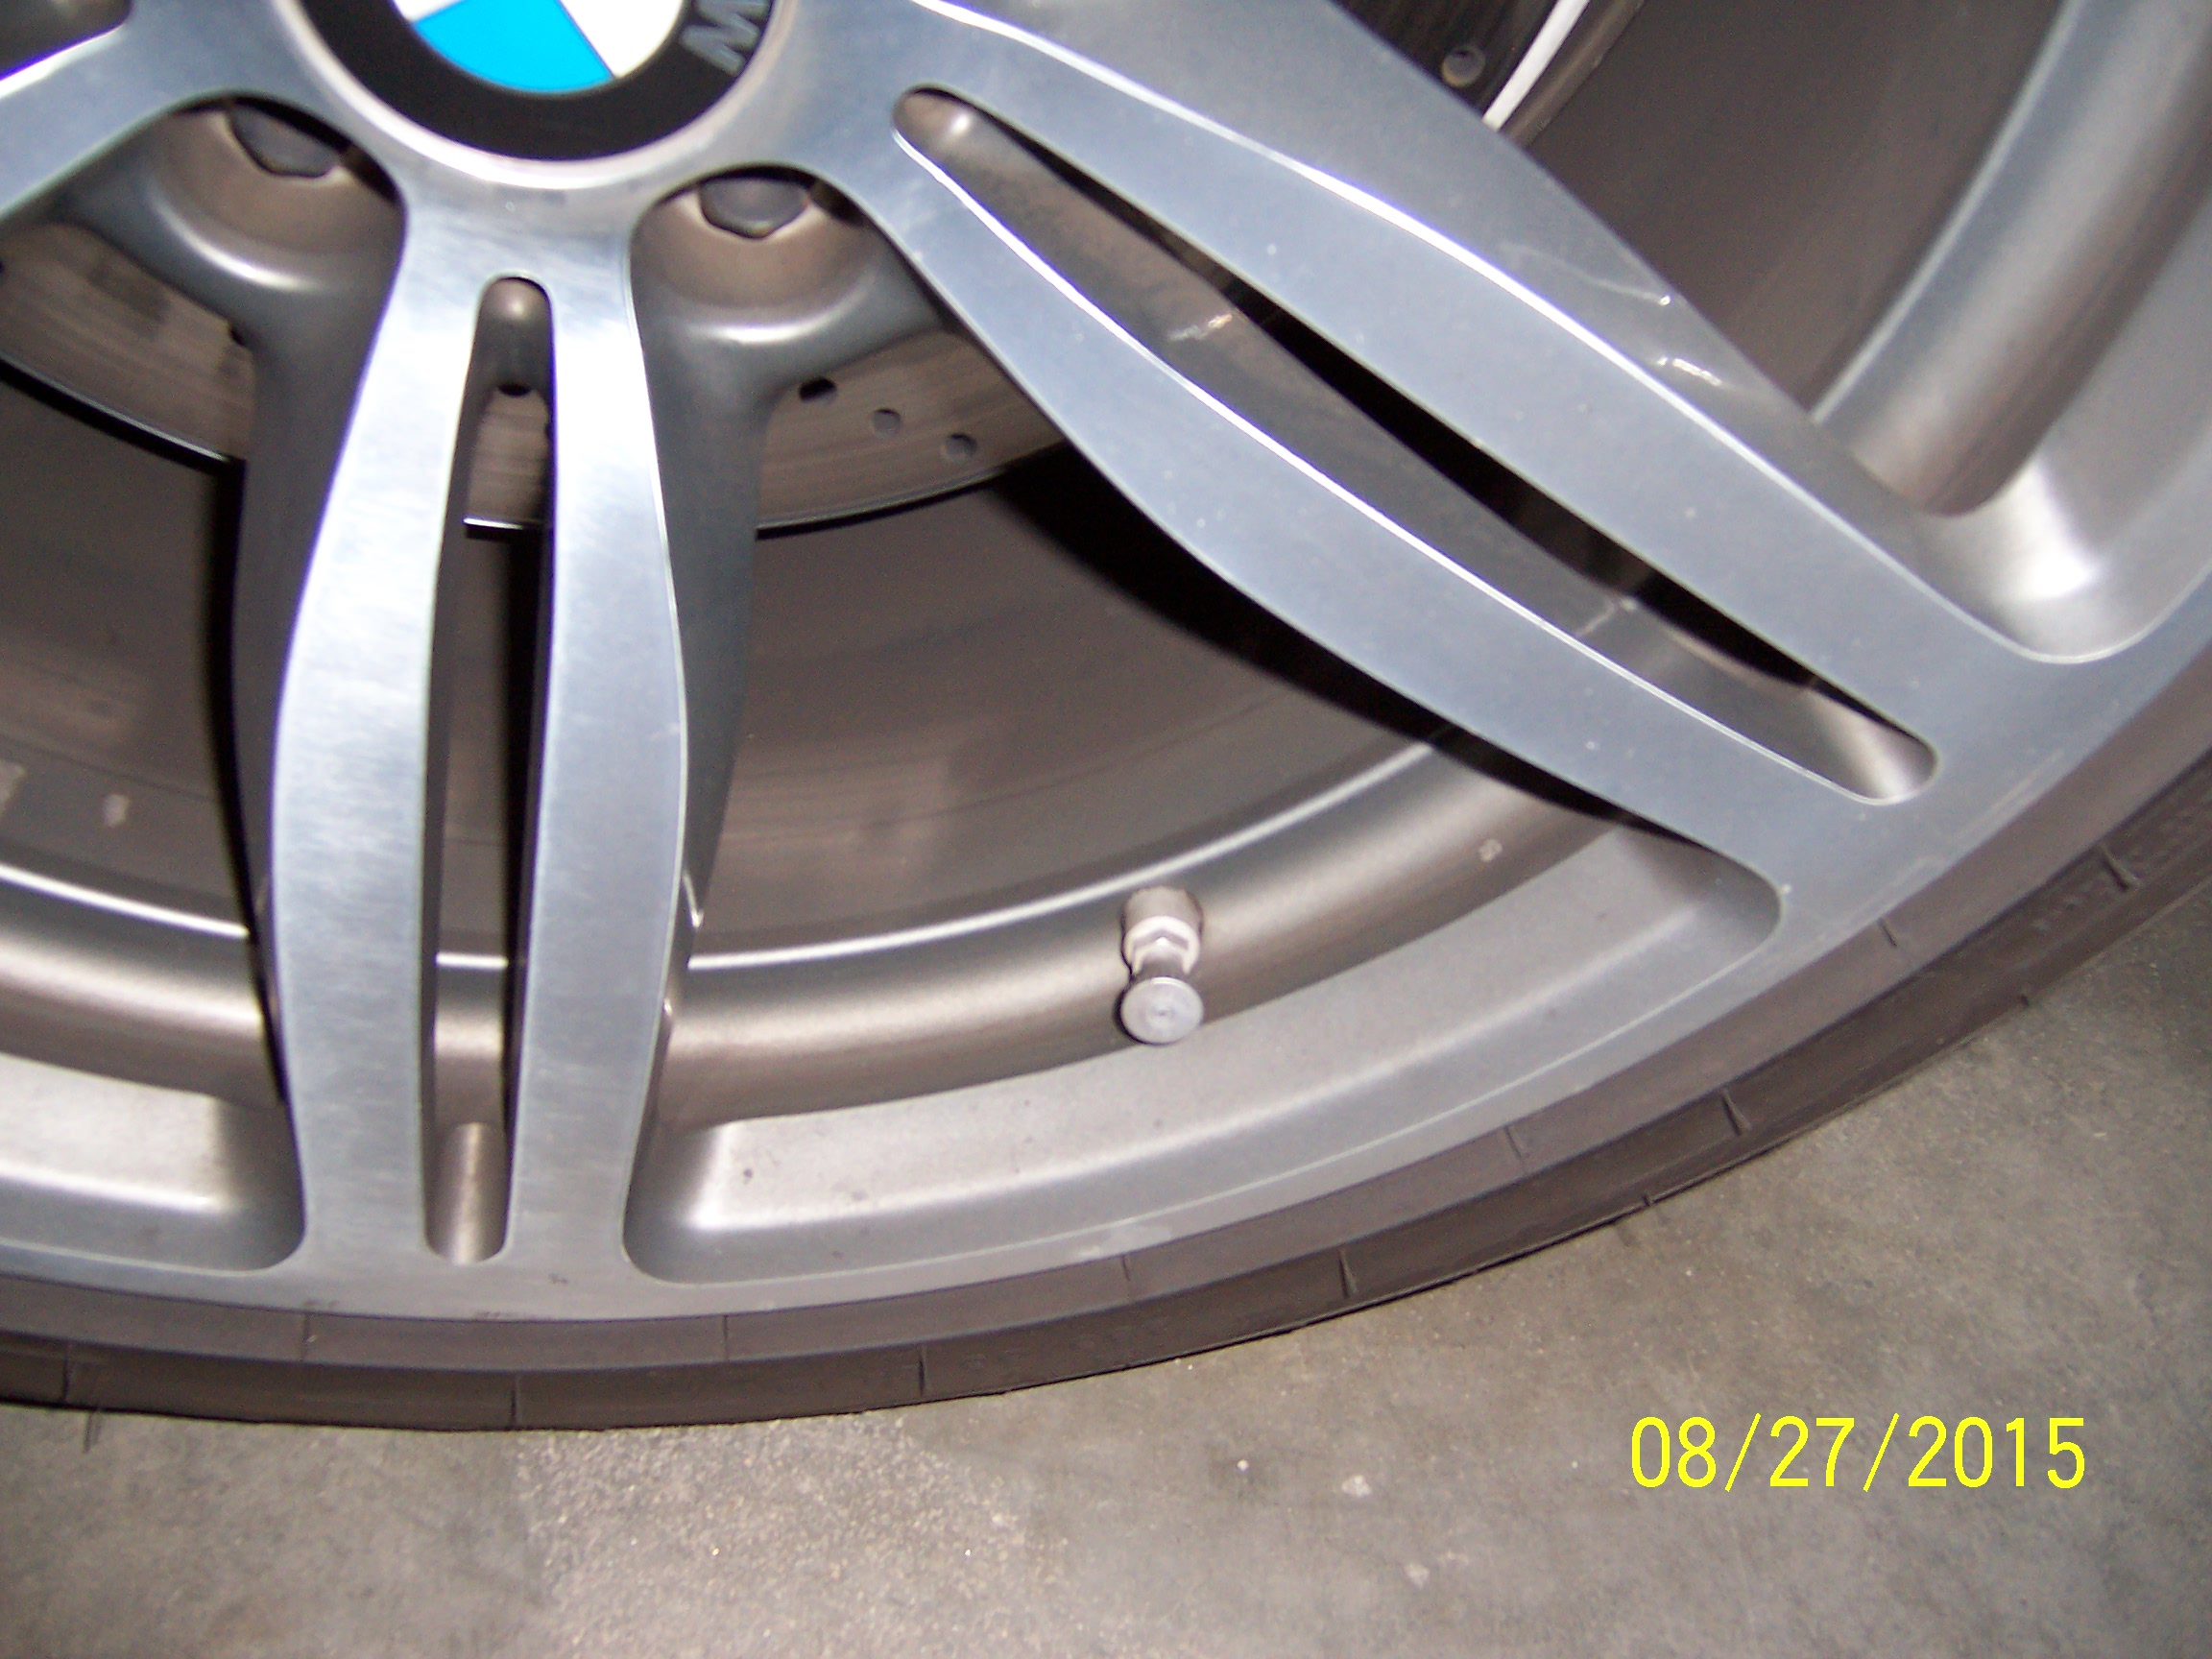 Worksheet. Problems with tire pressure monitor resetting  BMW M5 Forum